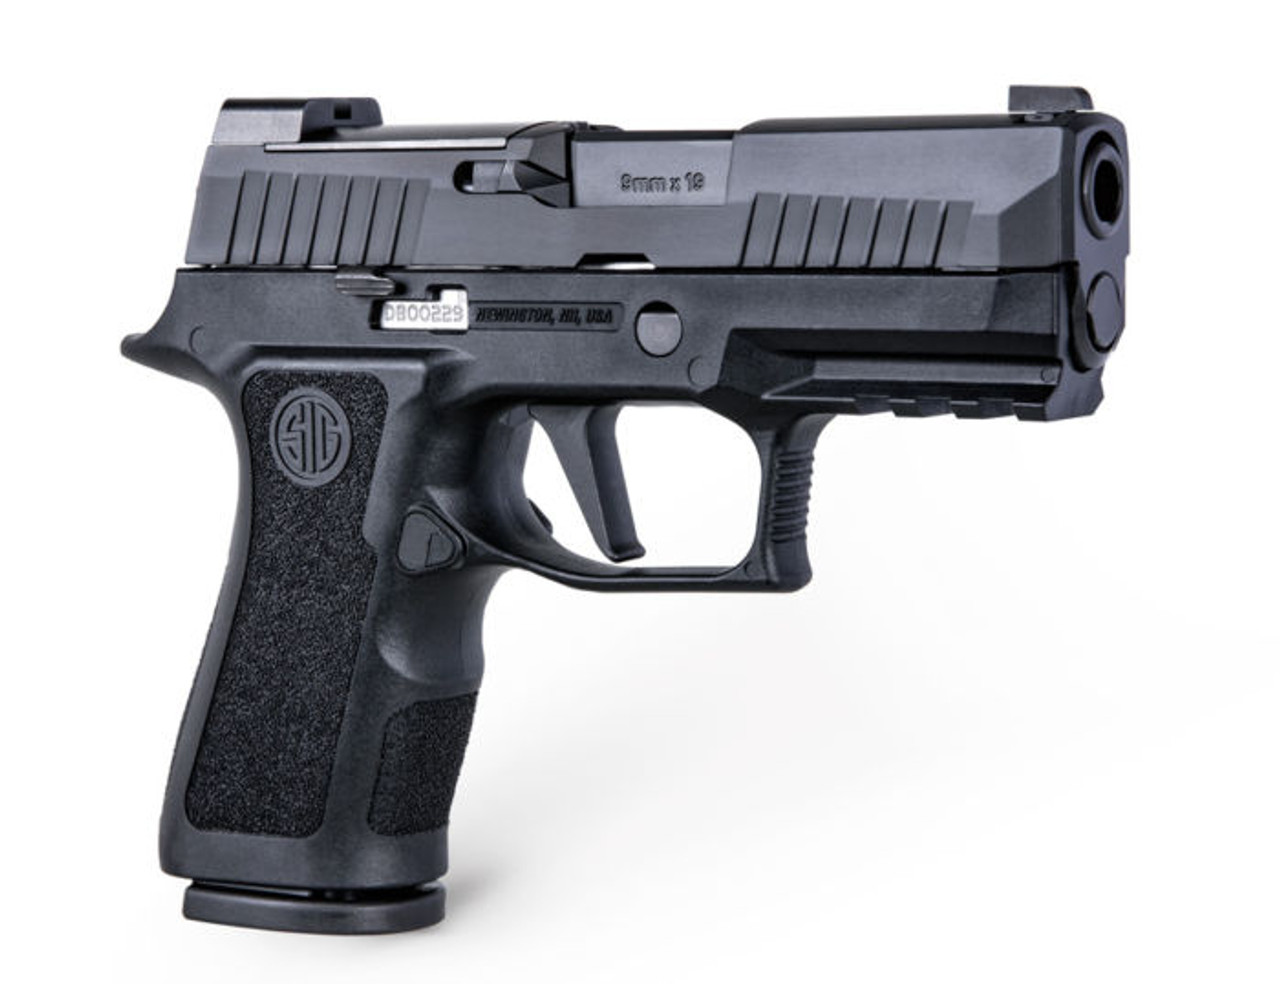 Sig Sauer P320 X Compact Build Kit